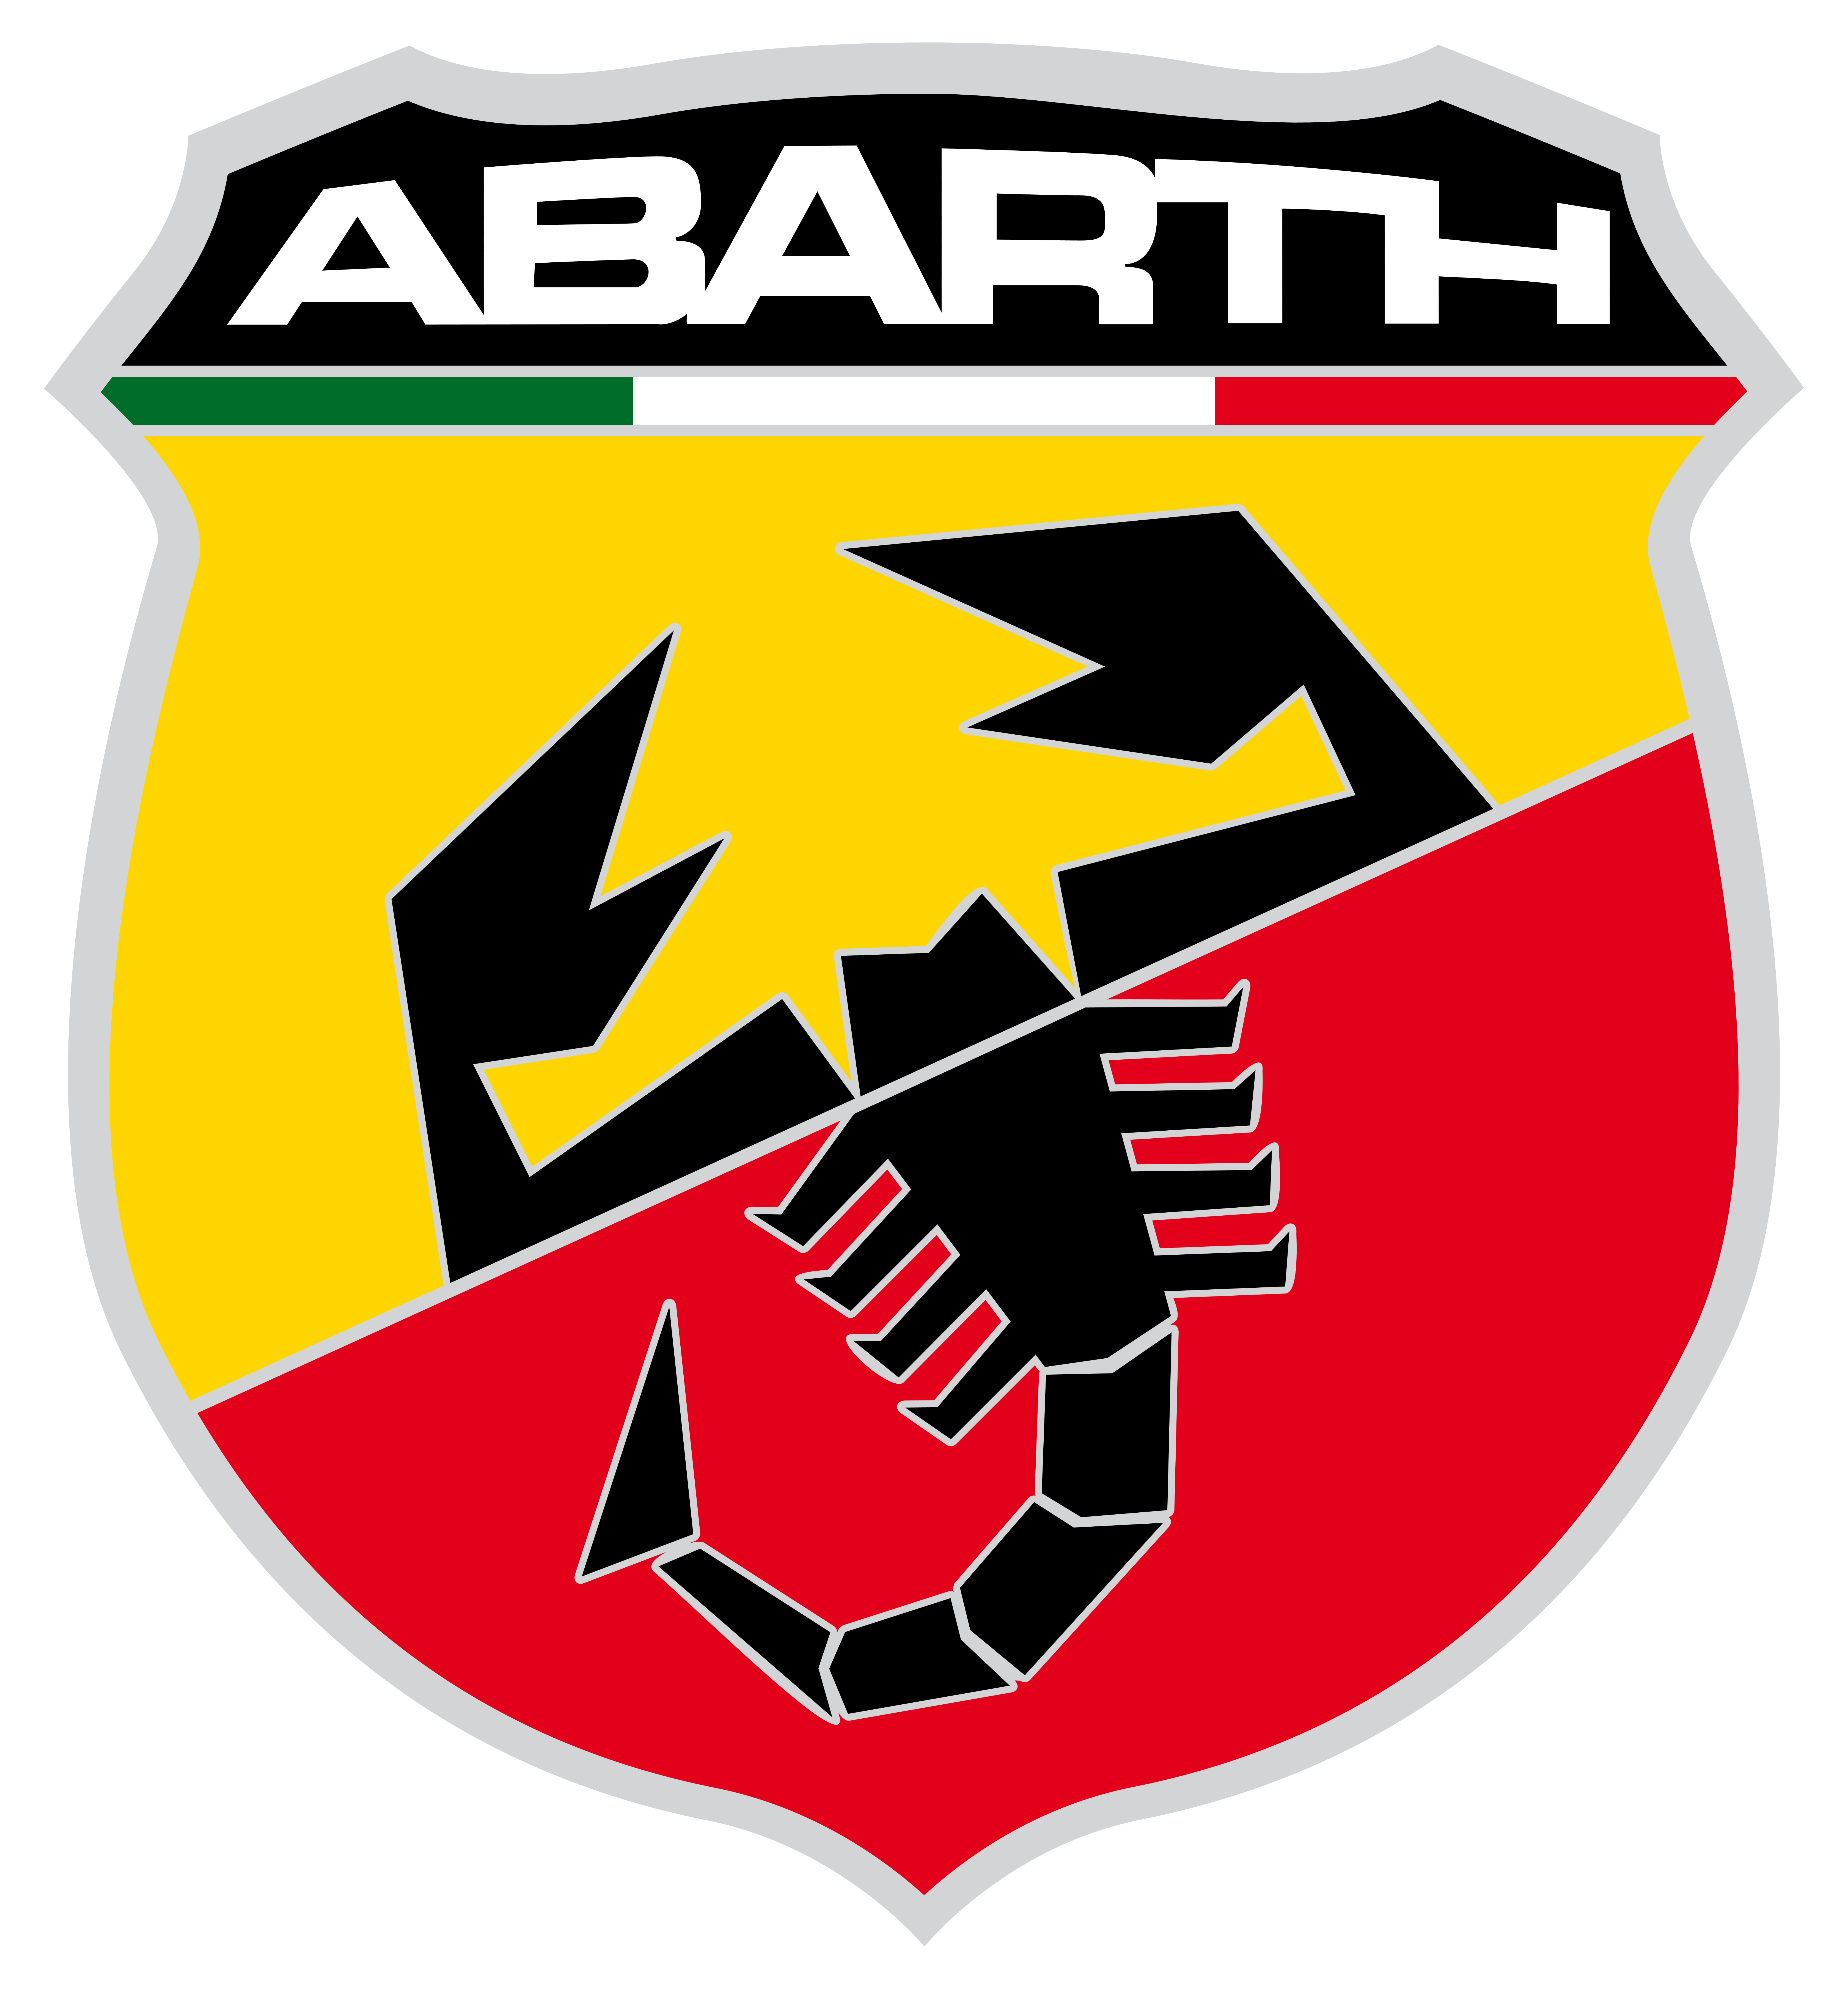 Abarth Logo - Abarth – Logos Download